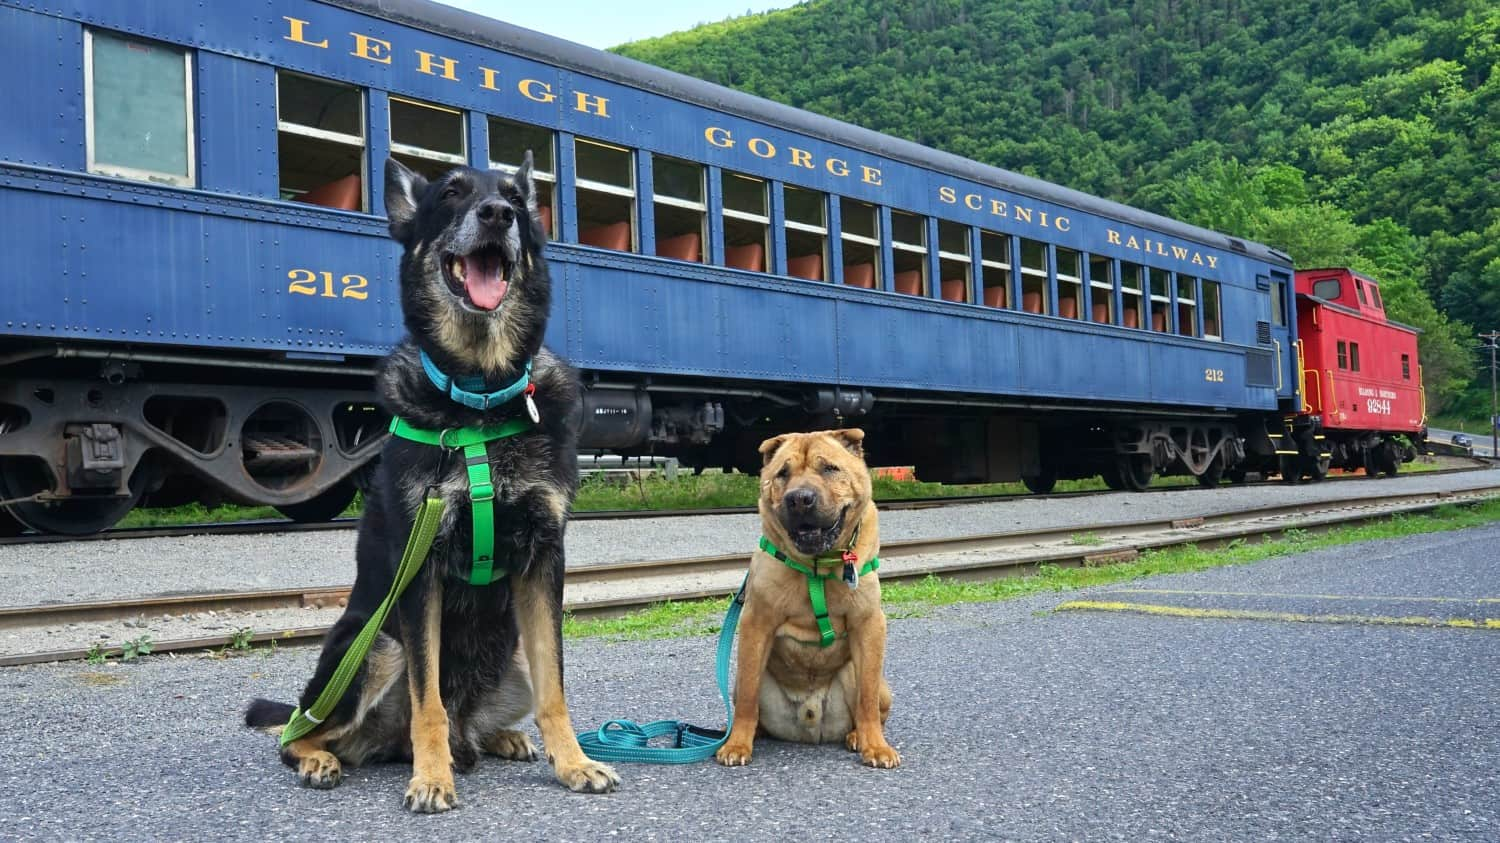 Pennsylvania's Top Pet Friendly Attraction: Lehigh Gorge Scenic Railway